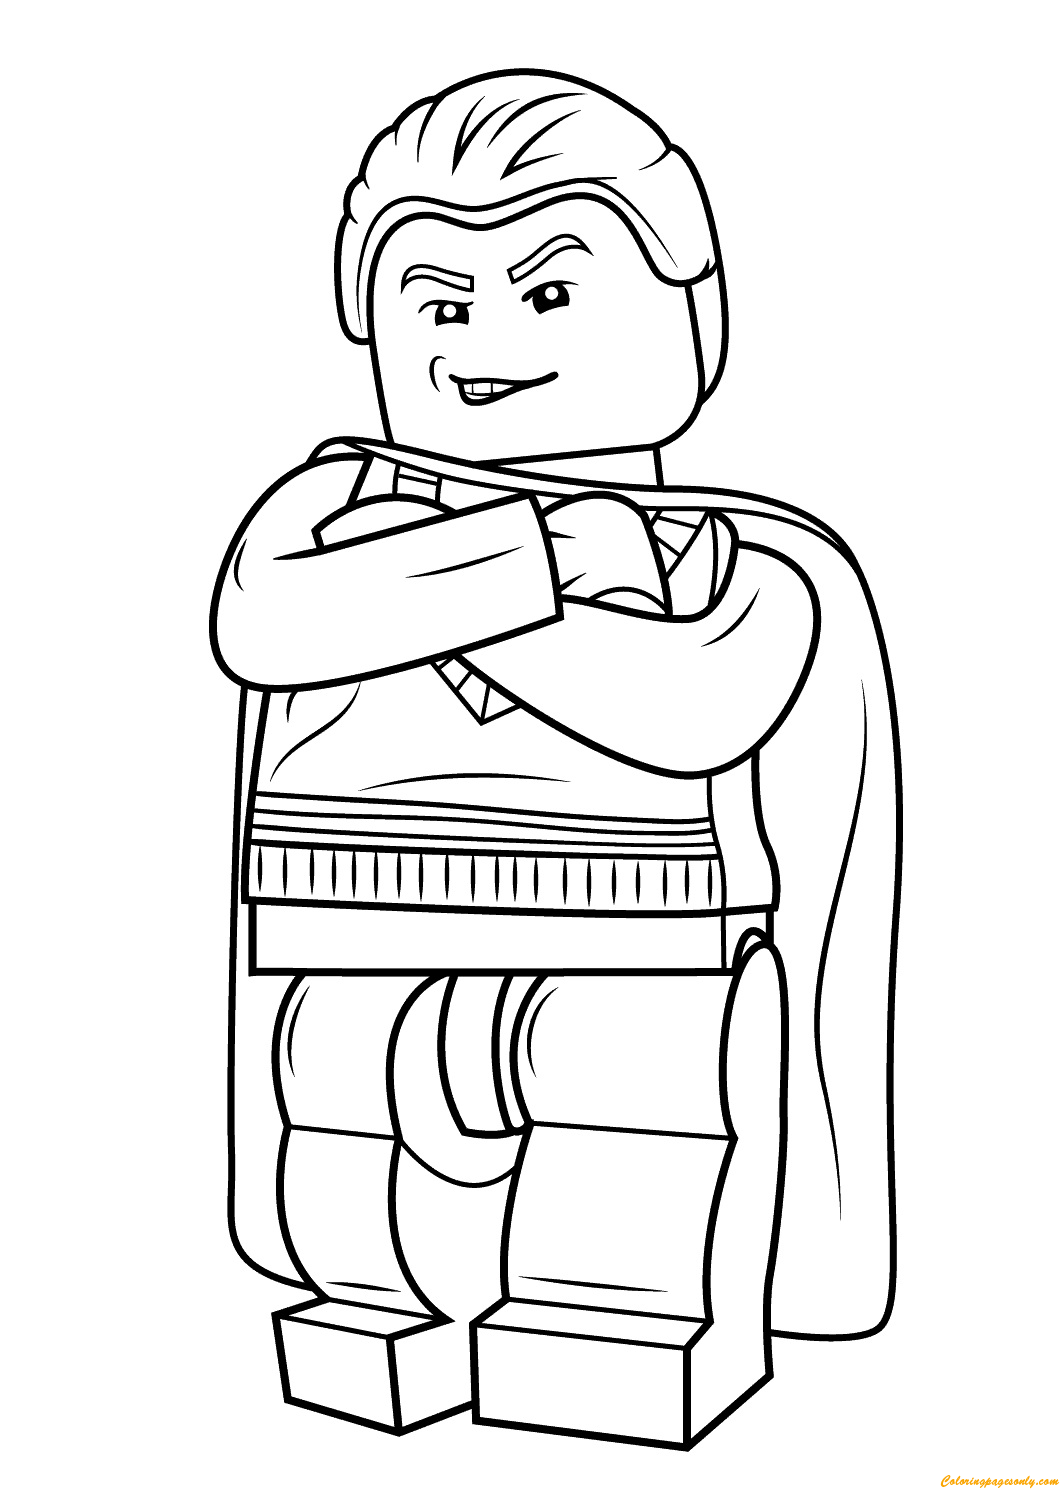 Lego Harry Potter Draco Malfoy Coloring Page Free